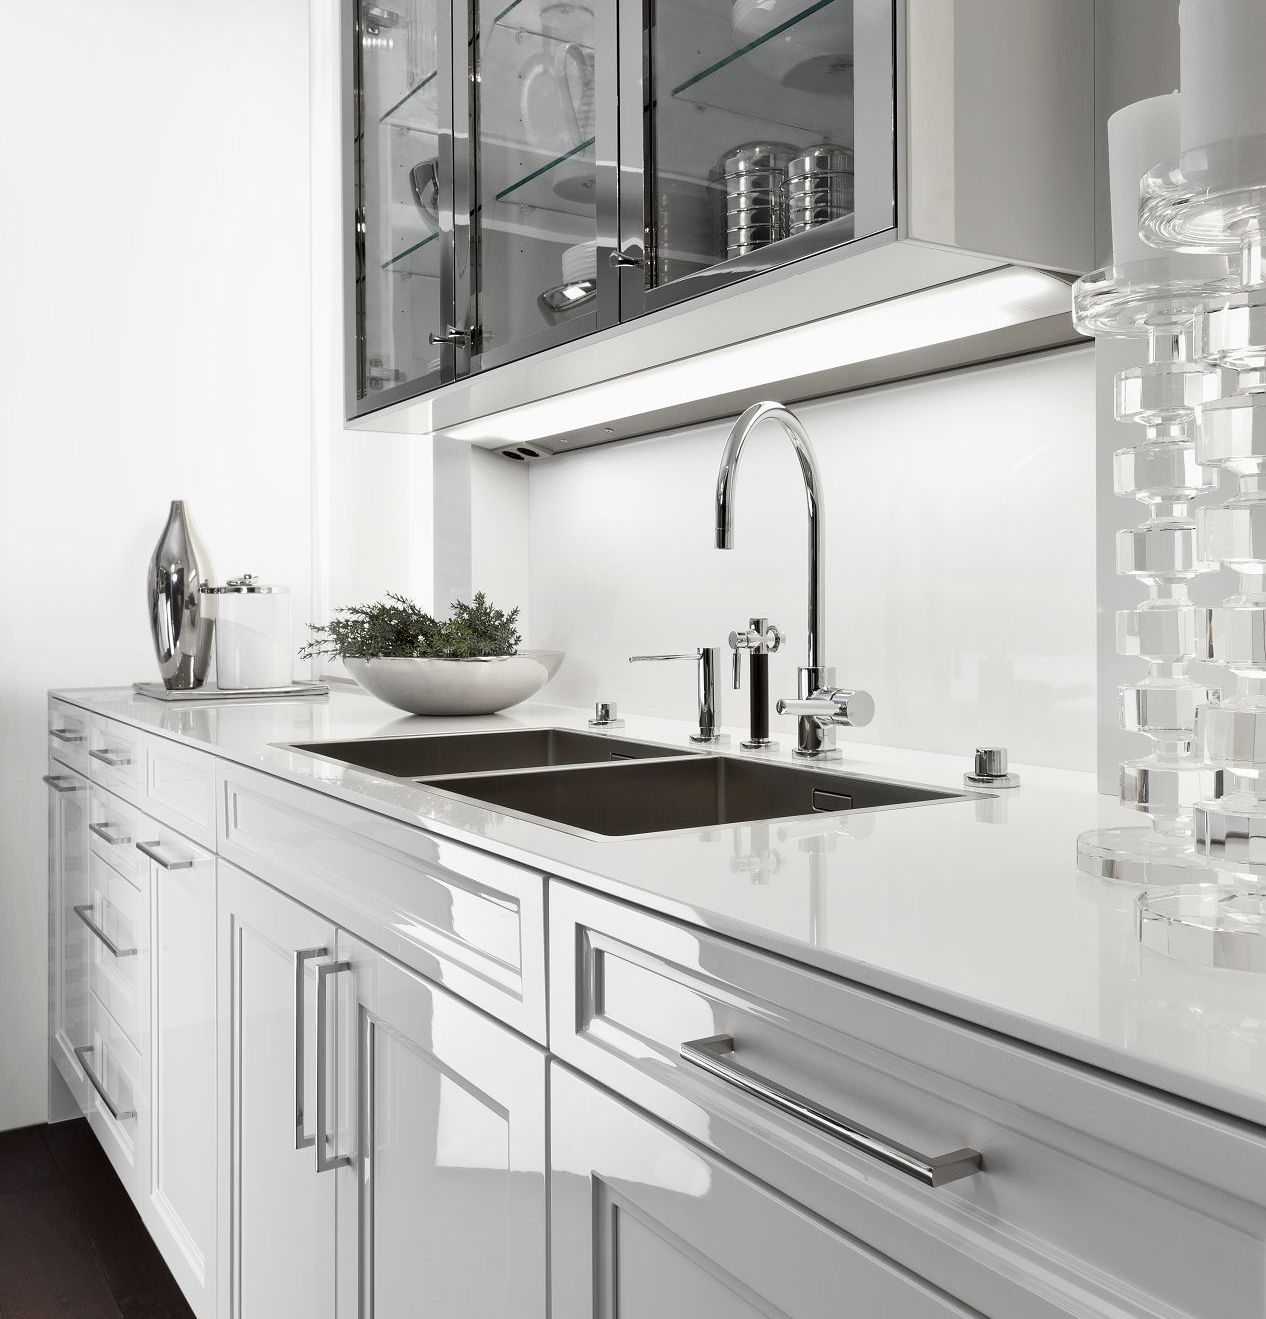 ... SieMatic Classic BeauxArts S2 Base Cabinets In White And Wall Cabinets  In Nickel Gloss Finish ...